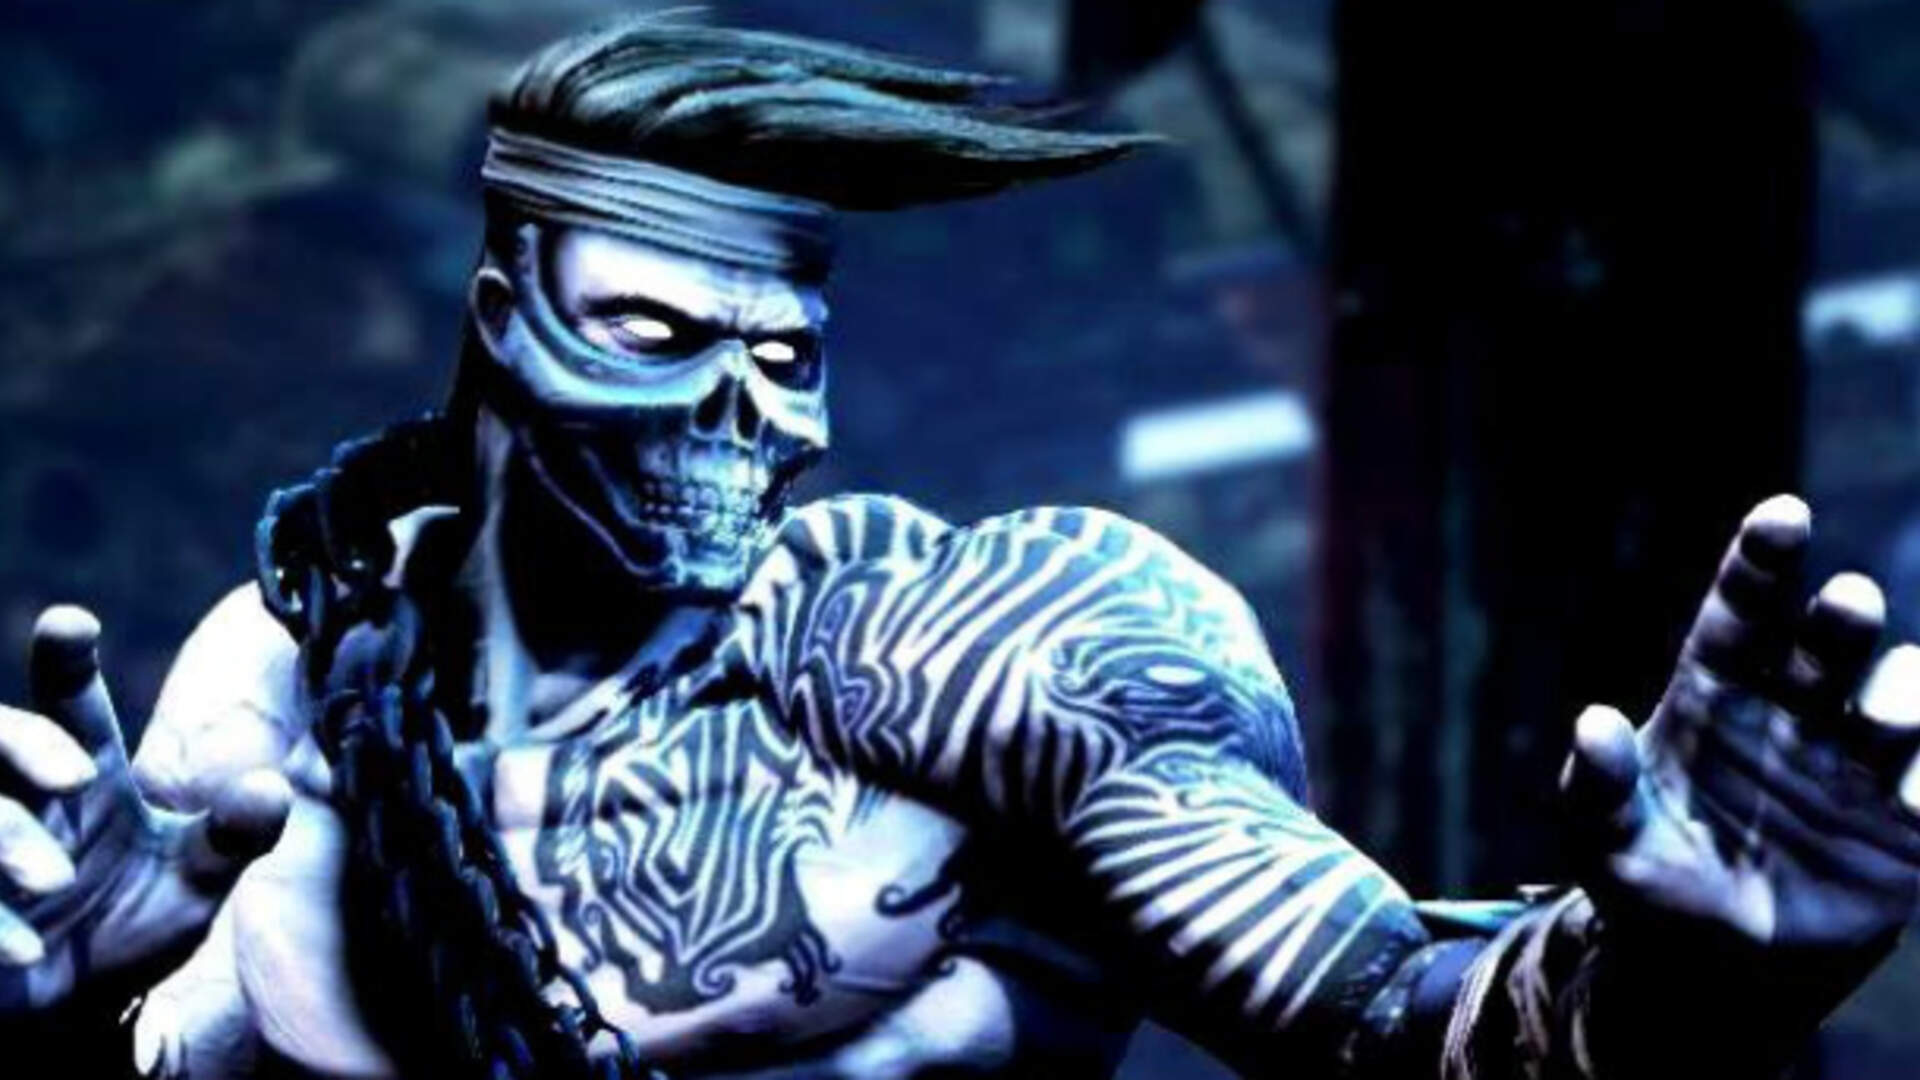 Killer Instinct on Steam Will Let You Play With Xbox One and Windows 10 Players